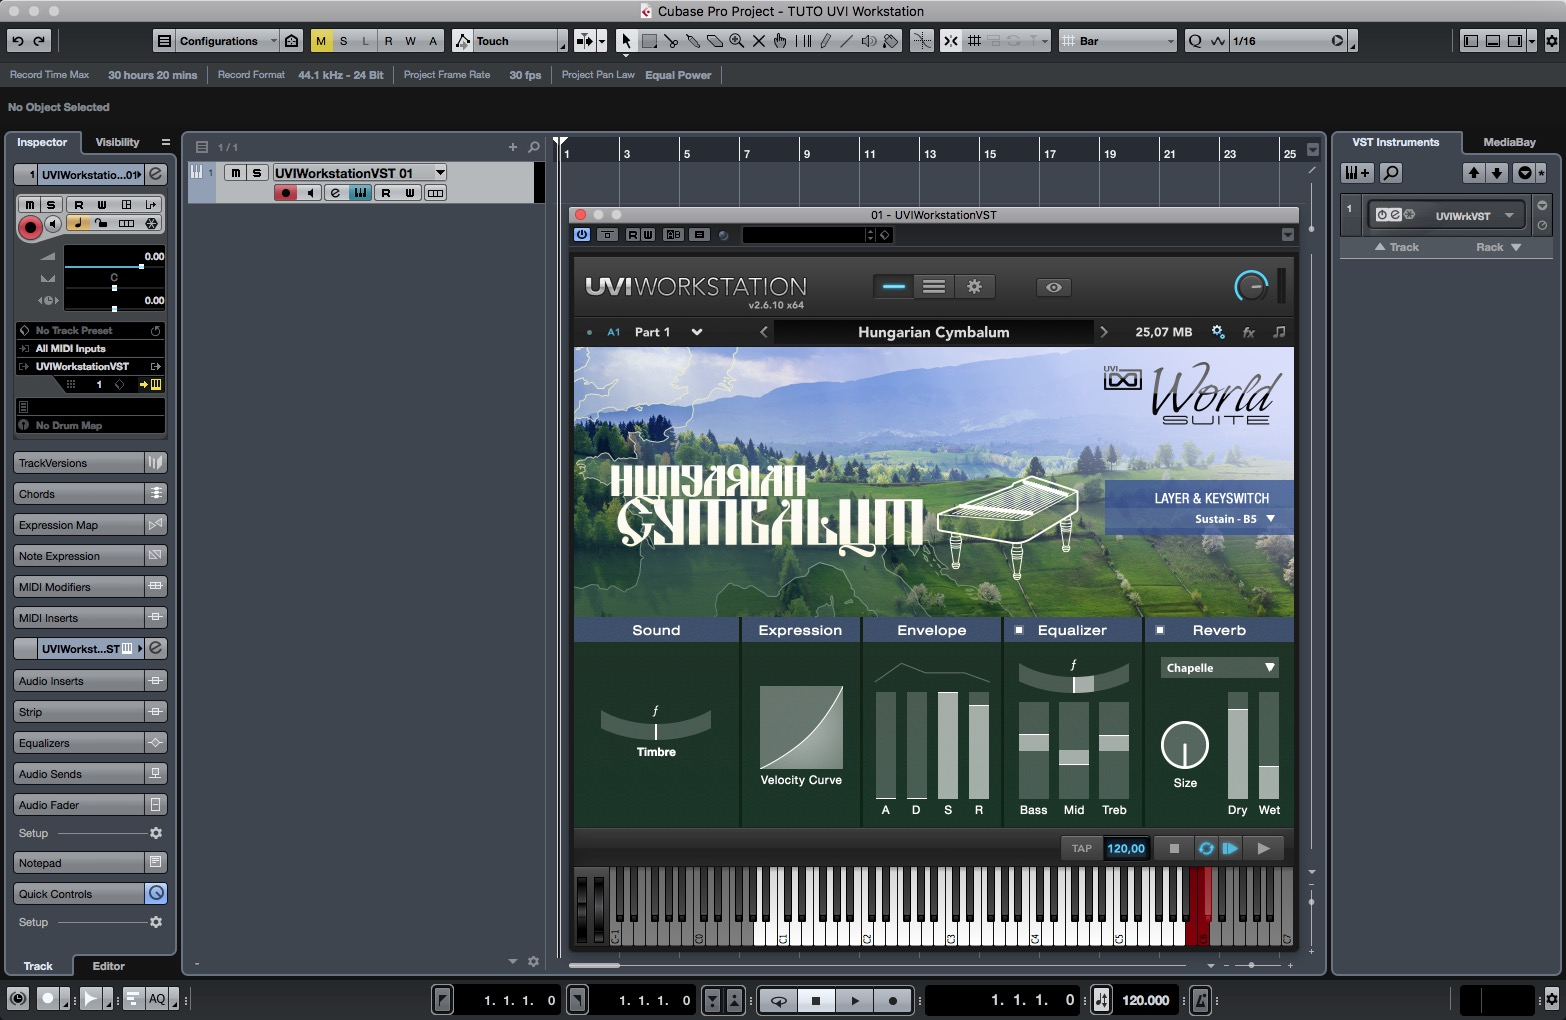 CUBASE_UVIWS_Step2_Result.jpg